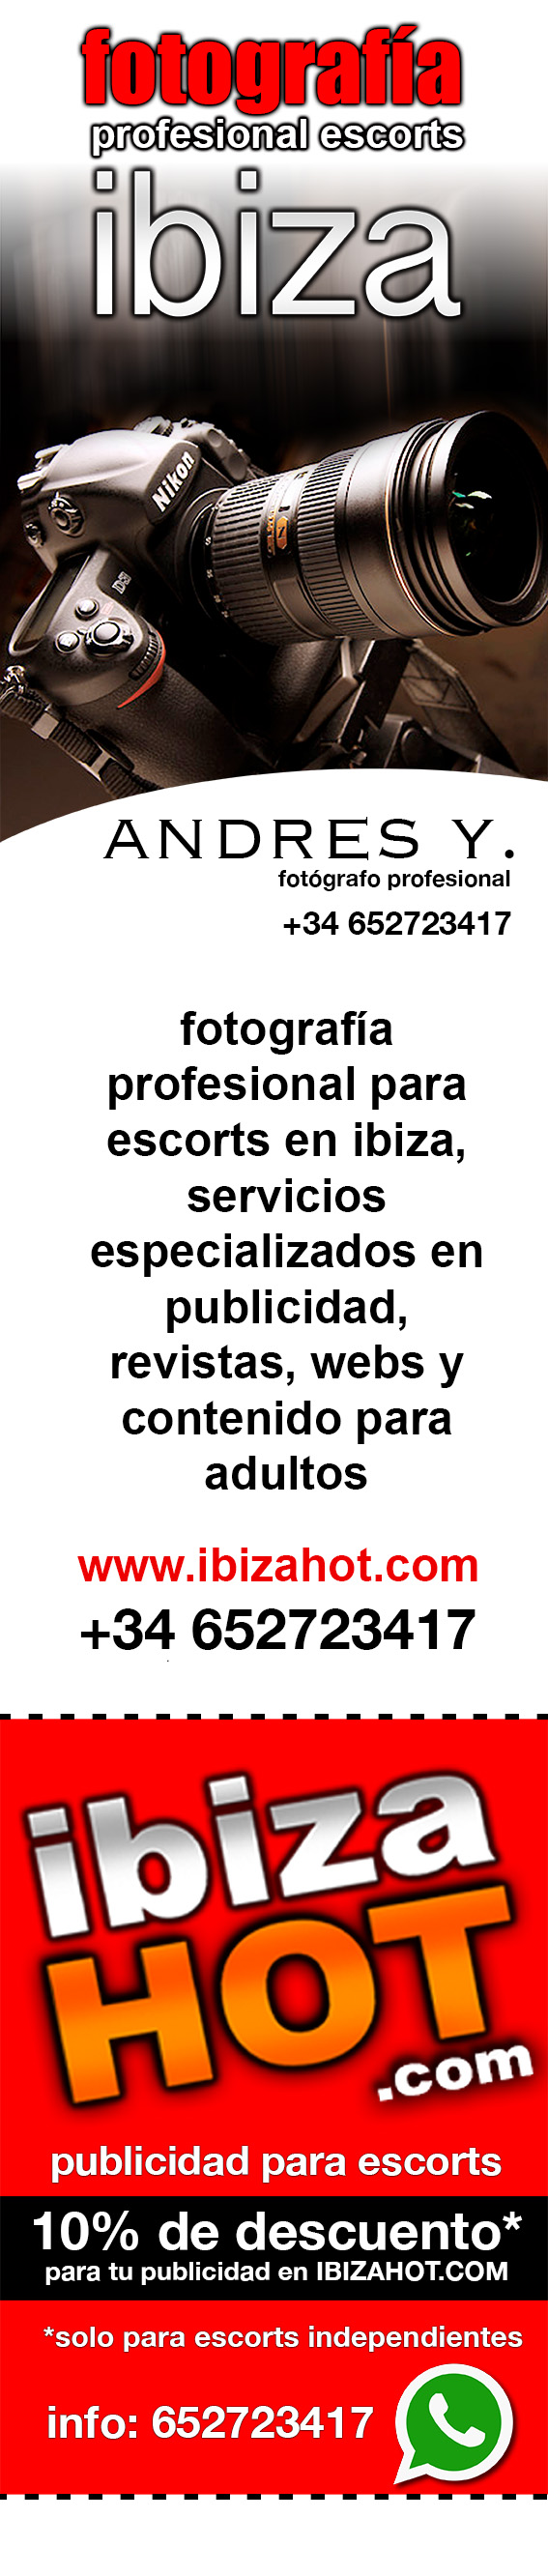 IBIZAHOT.COM - escorts ibiza, escort in ibiza, ibiza escorts, girls escort ibiza, putas en ibiza, chicas escort, putas en ibiza, escorts in ibiza, sex contacts ibiza, hookers in ibiza, sex ladies ibiza, callgirls ibiza - ESCORT IBIZA Y PUTAS IBIZA - IBIZAHOT.COM